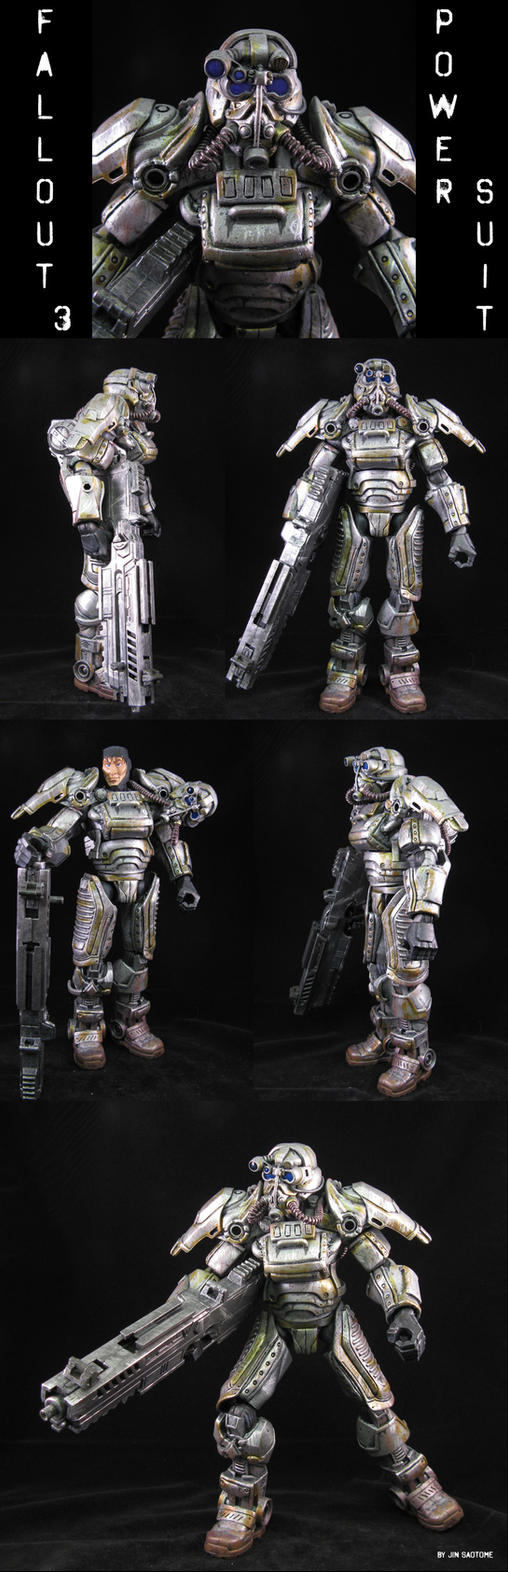 Fallout 3 Power Suit by Jin-Saotome